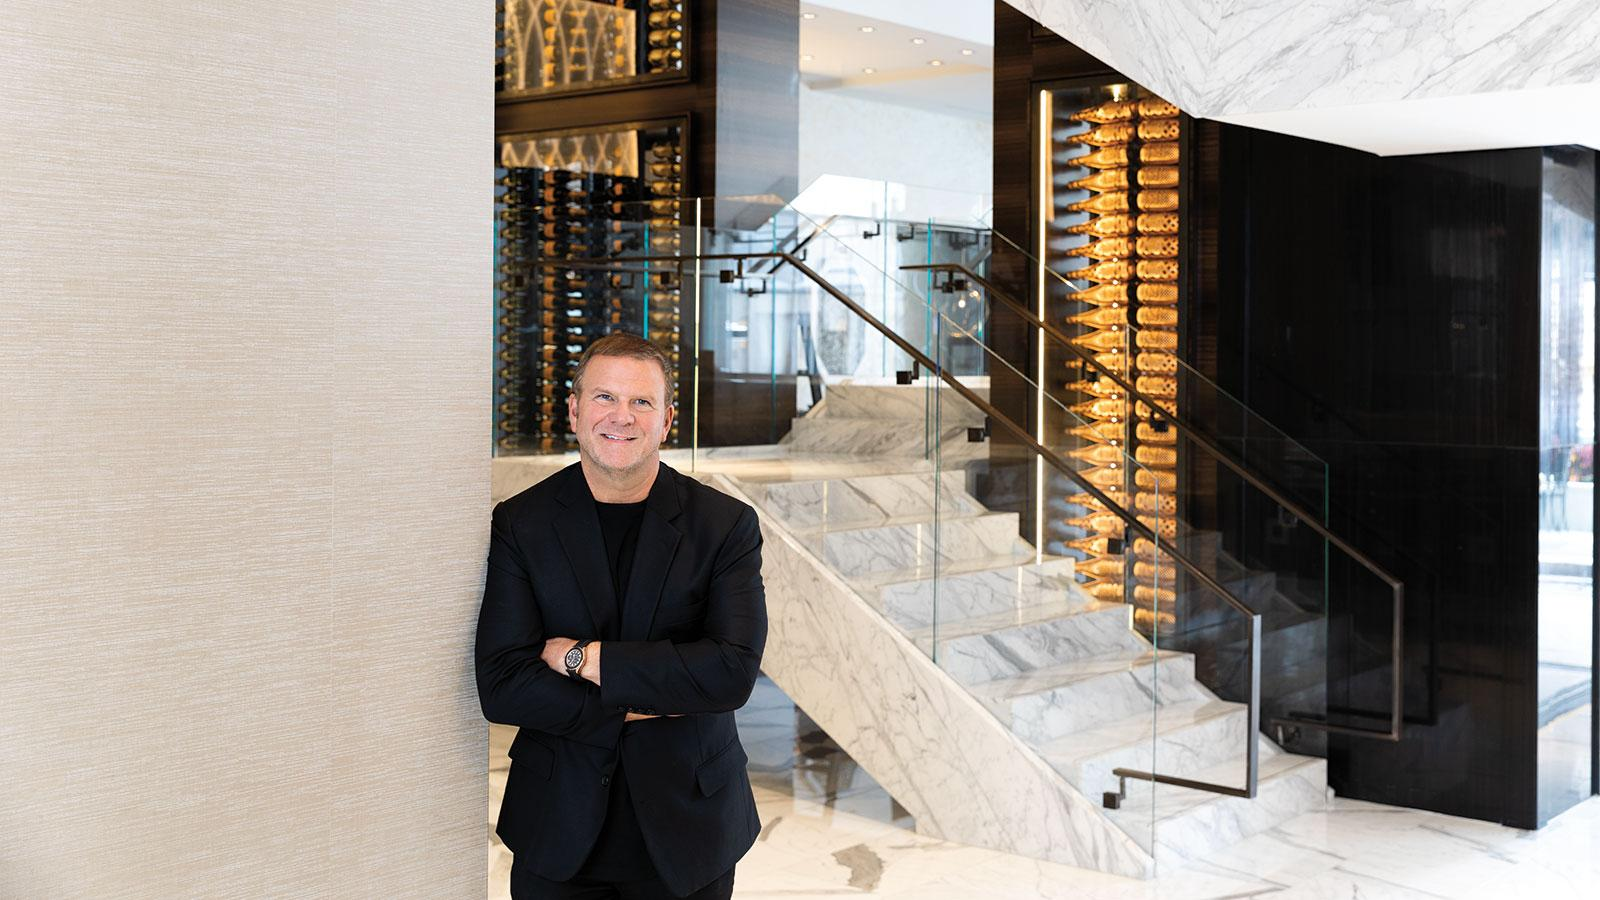 Tilman Fertitta Bets Big On Wine